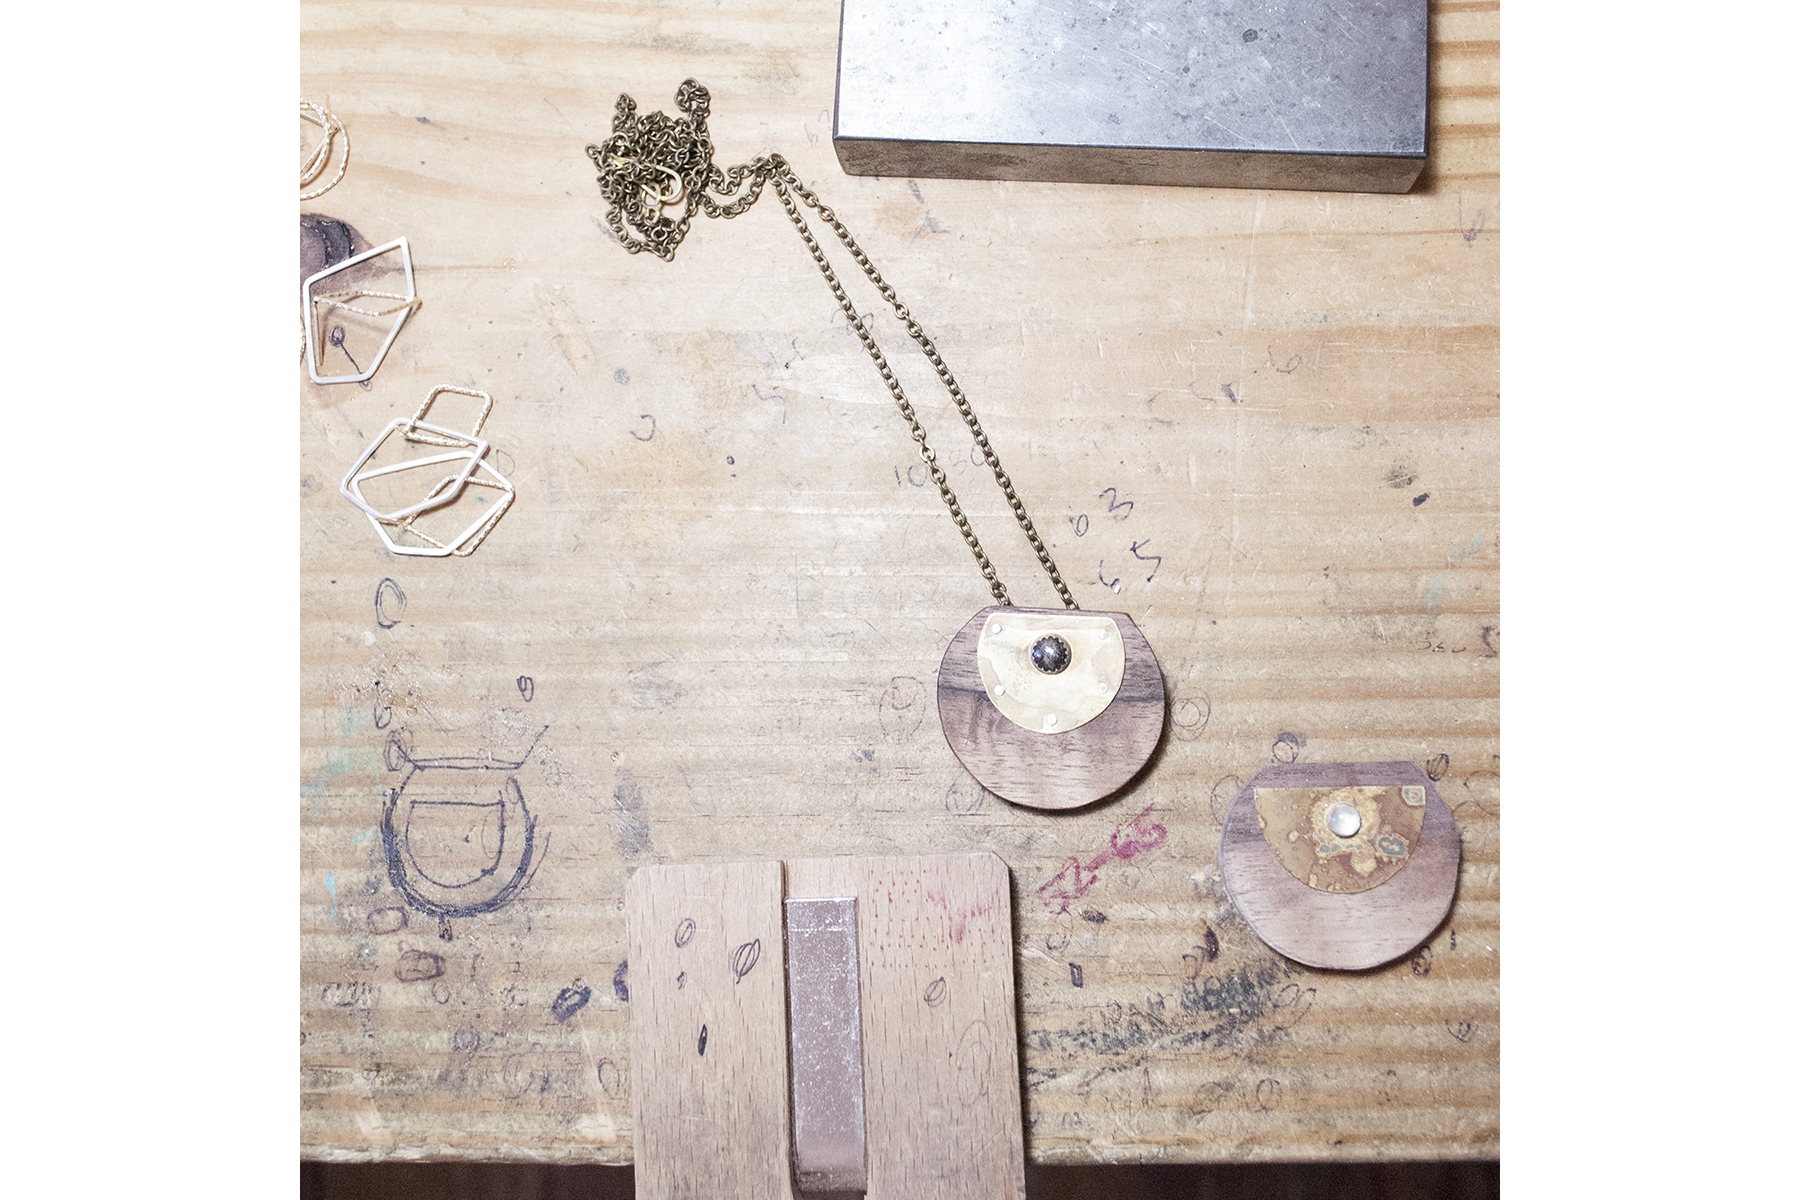 A pendant and an in-process pendant.